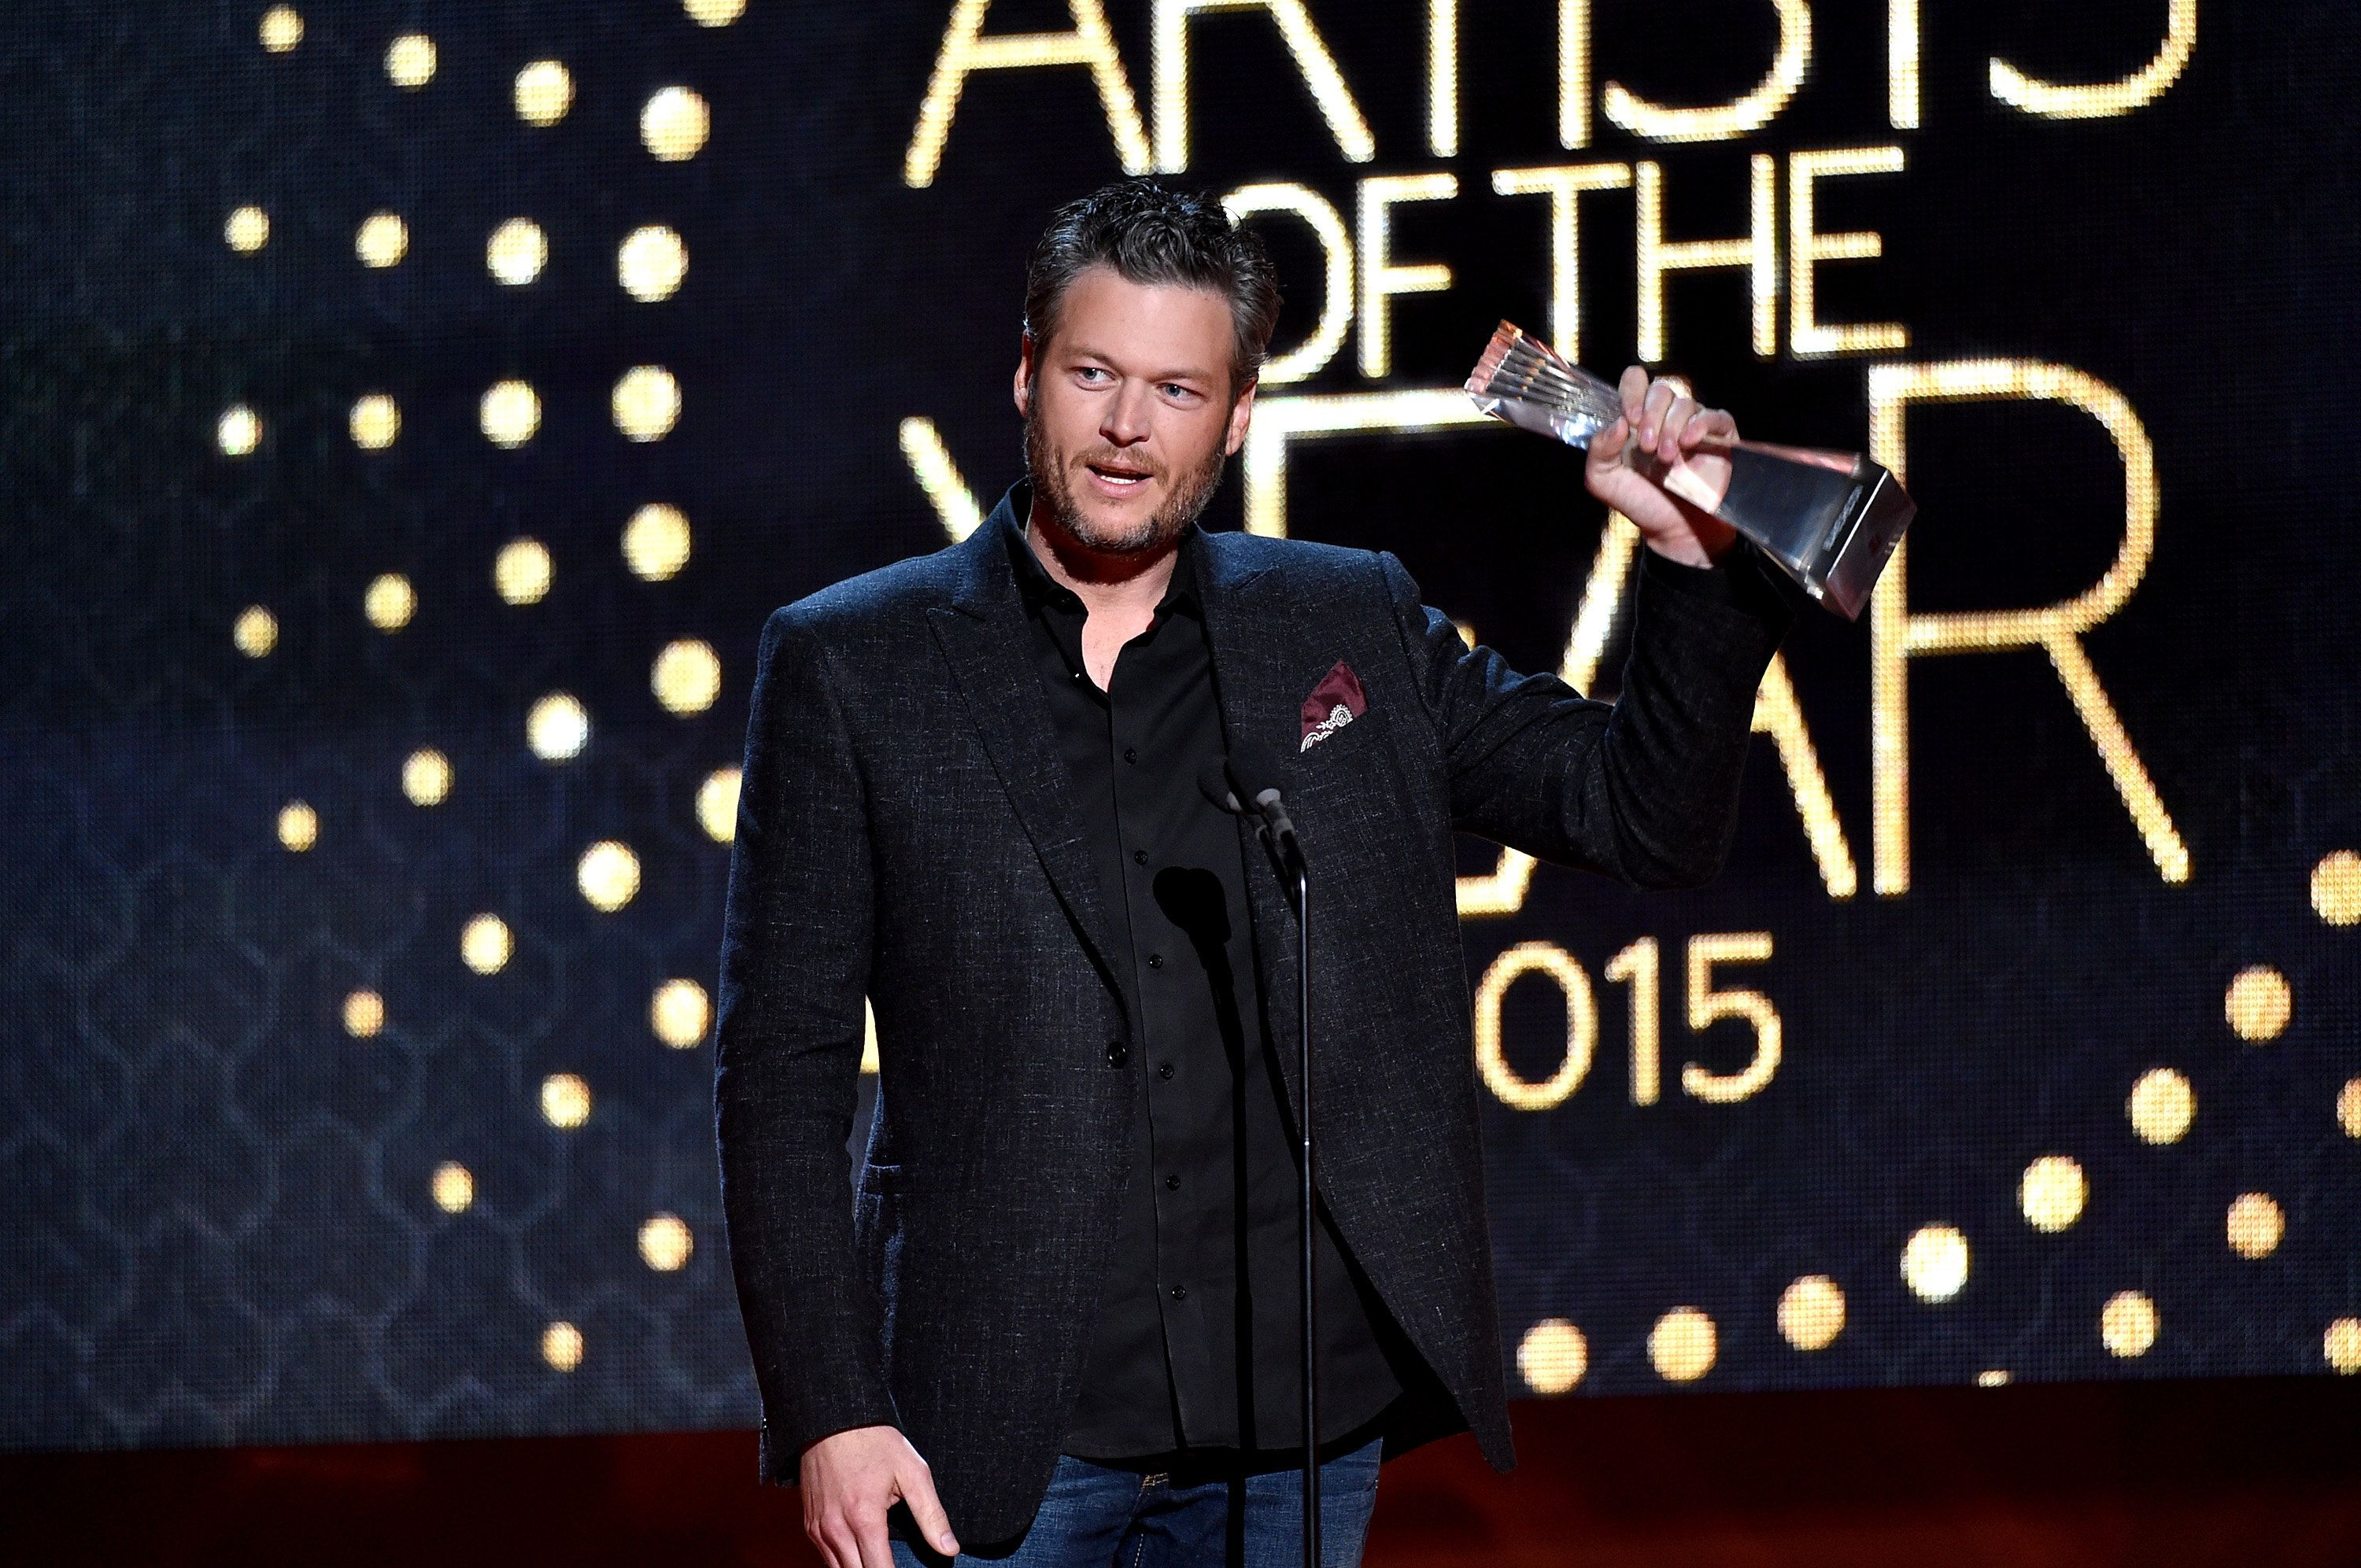 NASHVILLE, TN - DECEMBER 02:  Honoree Blake Shelton accepts an award onstage during the 2015 'CMT Artists of the Year' at Schermerhorn Symphony Center on December 2, 2015 in Nashville, Tennessee.  (Photo by John Shearer/Getty Images for CMT)